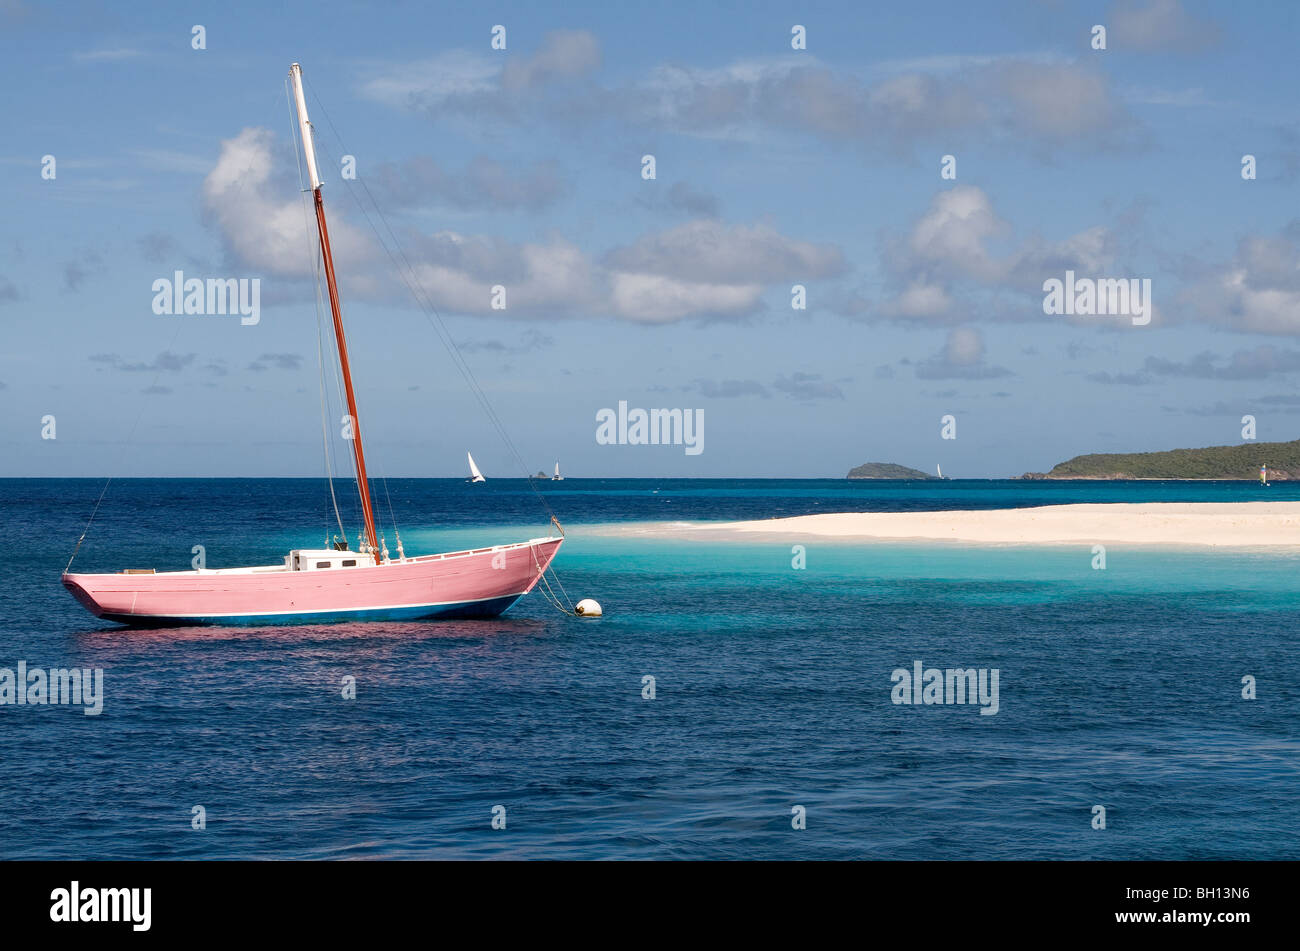 Desert Island, Pink Boat and Turquoise Sea. - Stock Image